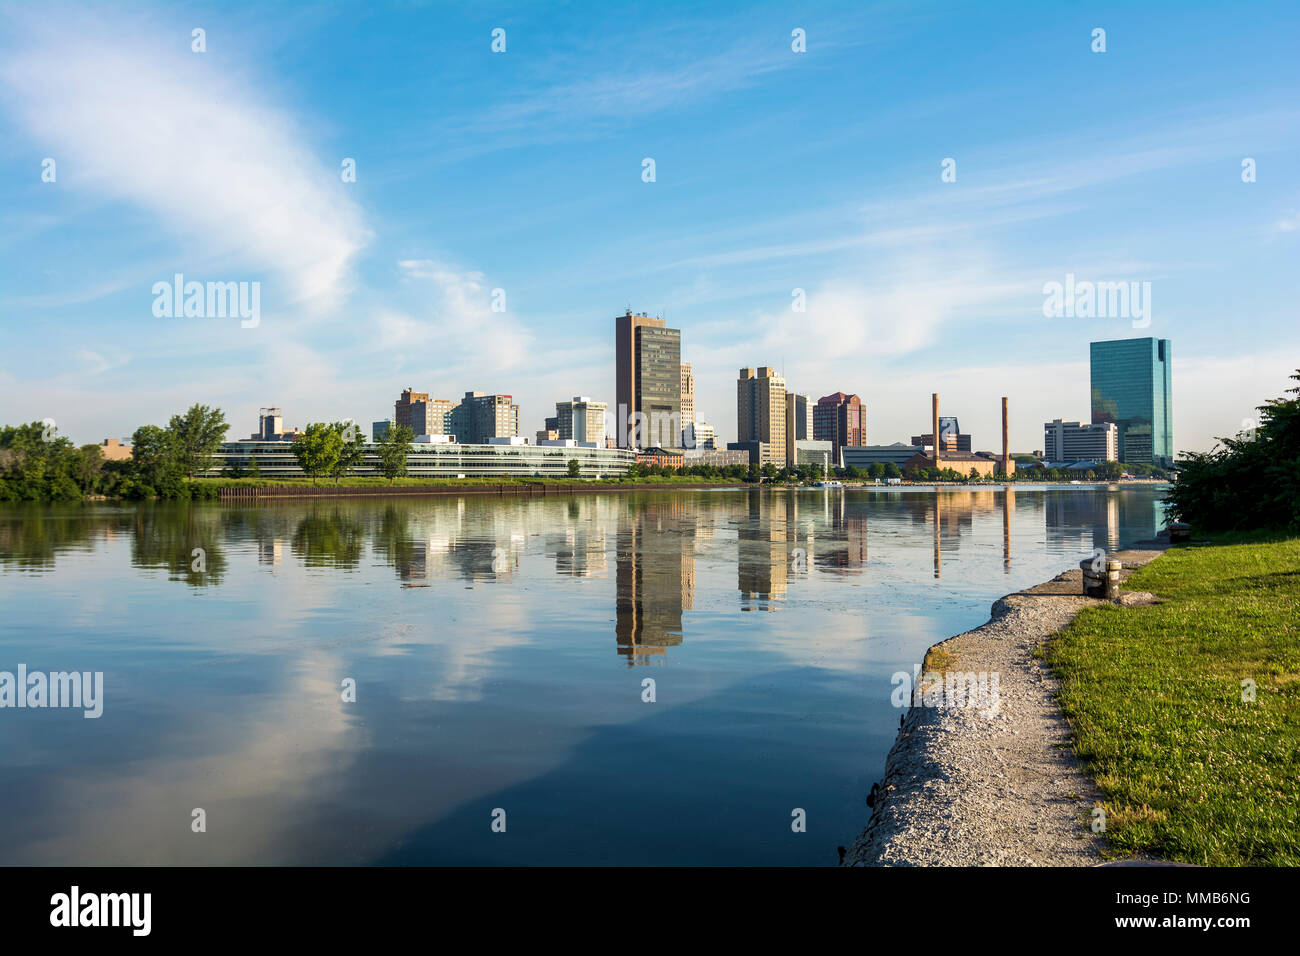 A panoramic view of downtown Toledo Ohio's skyline from across the Maumee River.  A beautiful blue sky with white clouds reflecting into the water. Stock Photo